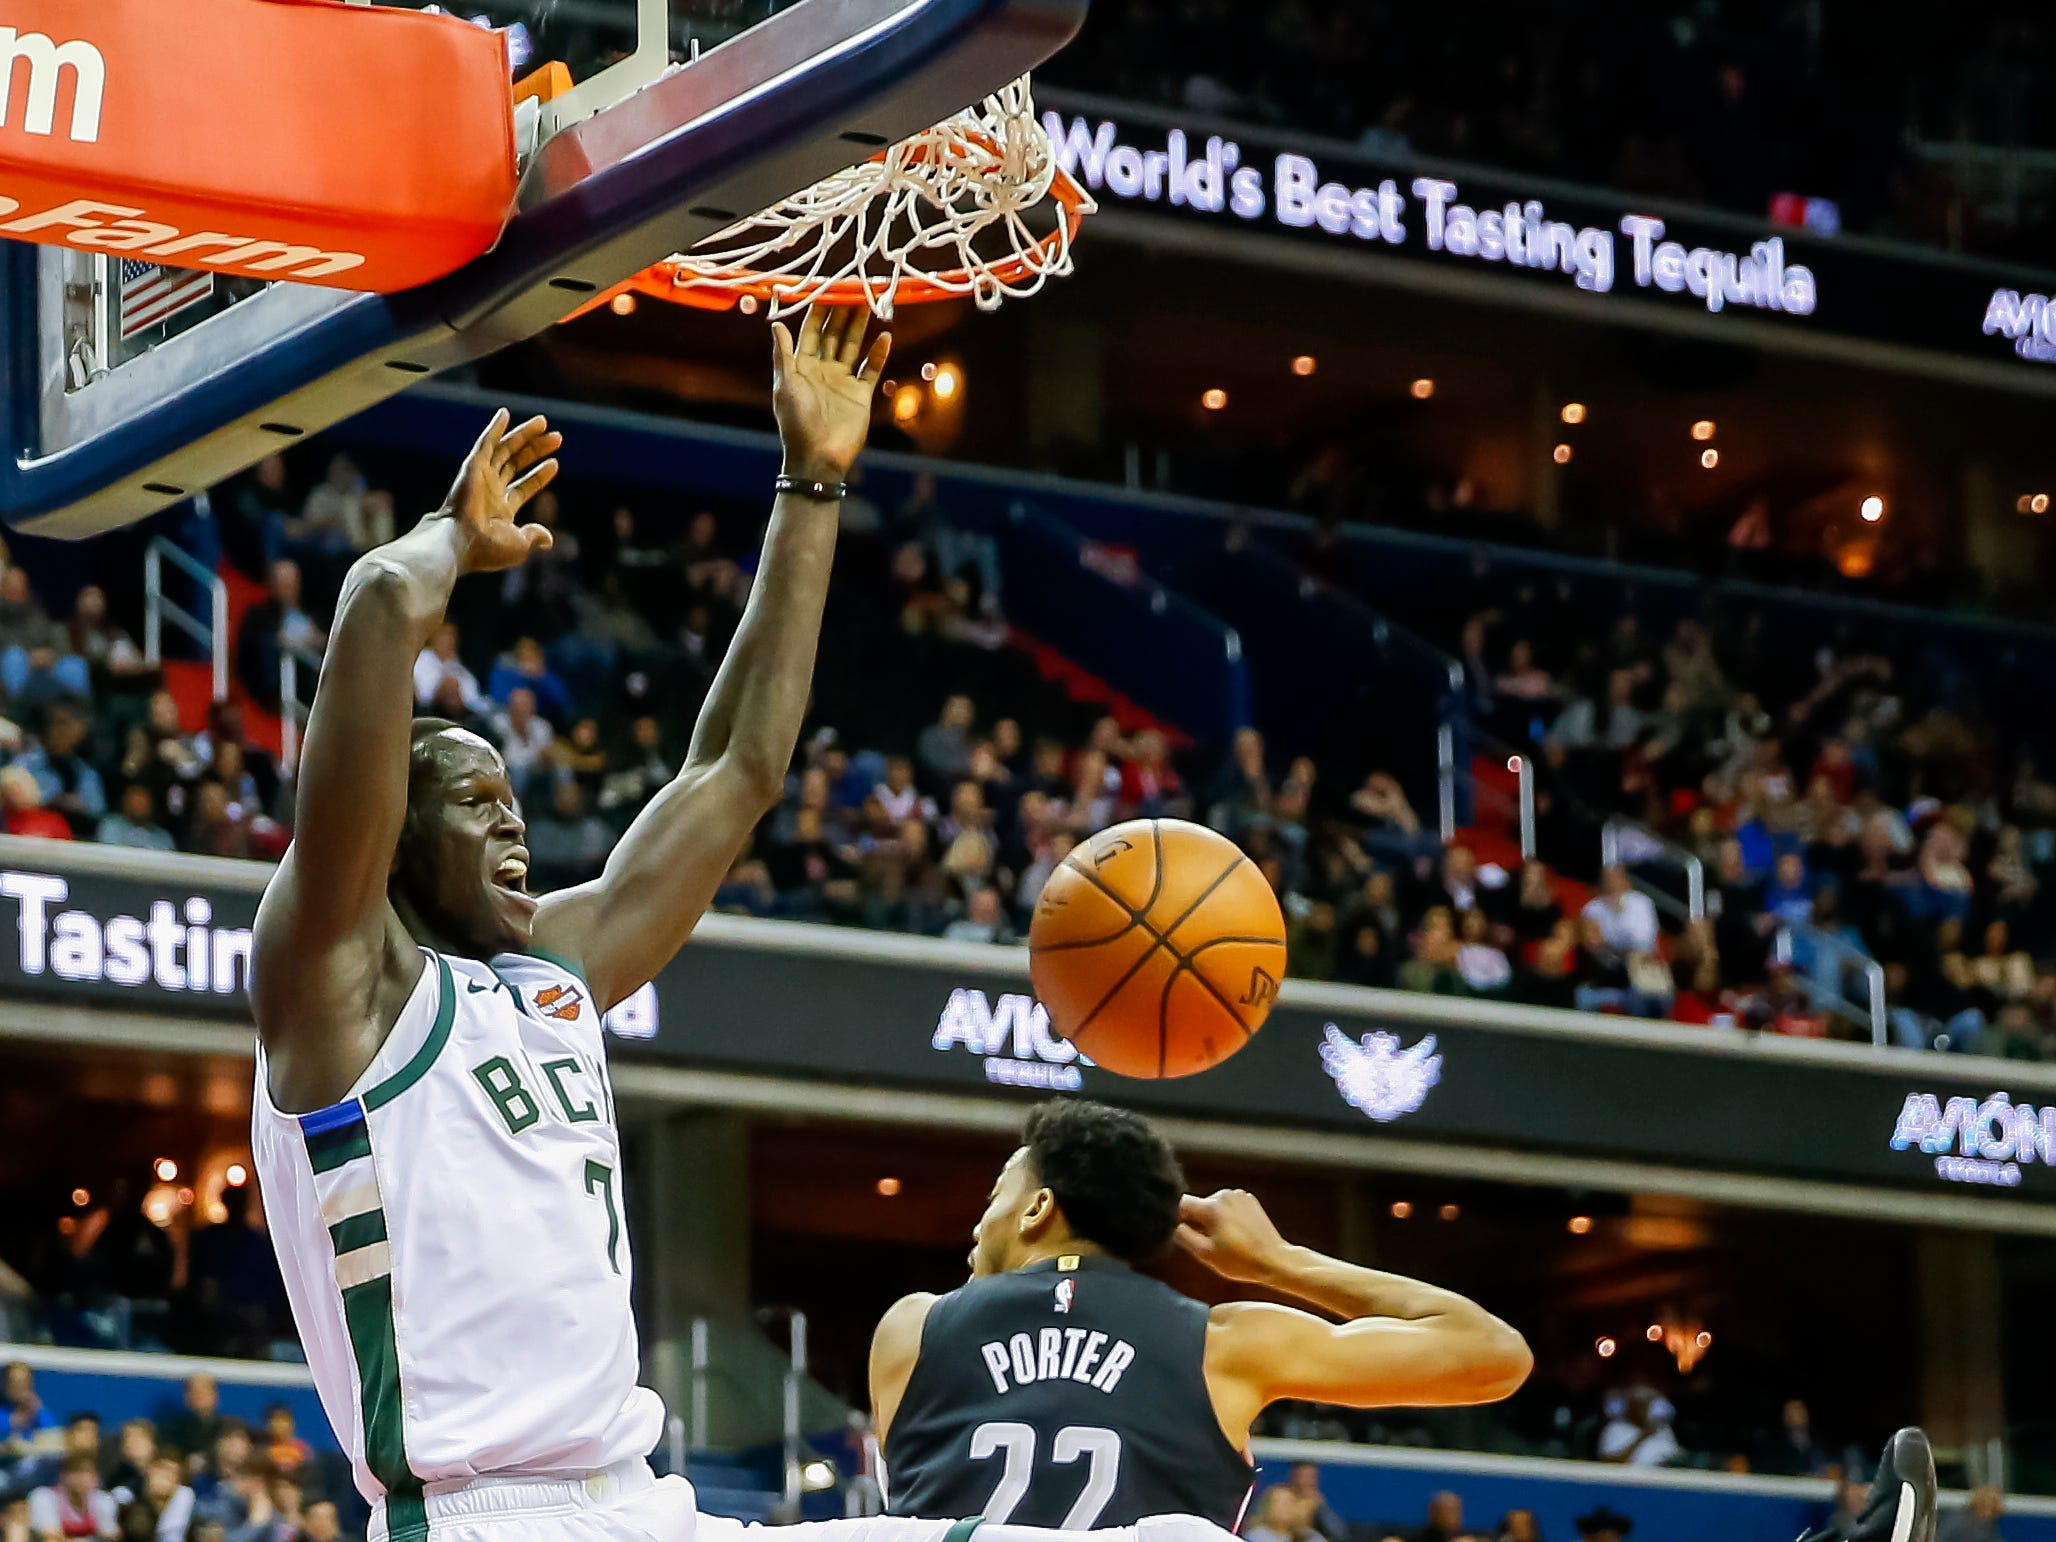 Bucks forward Thon Maker dunks over the Wizards' Otto Porter Jr. on Friday night.